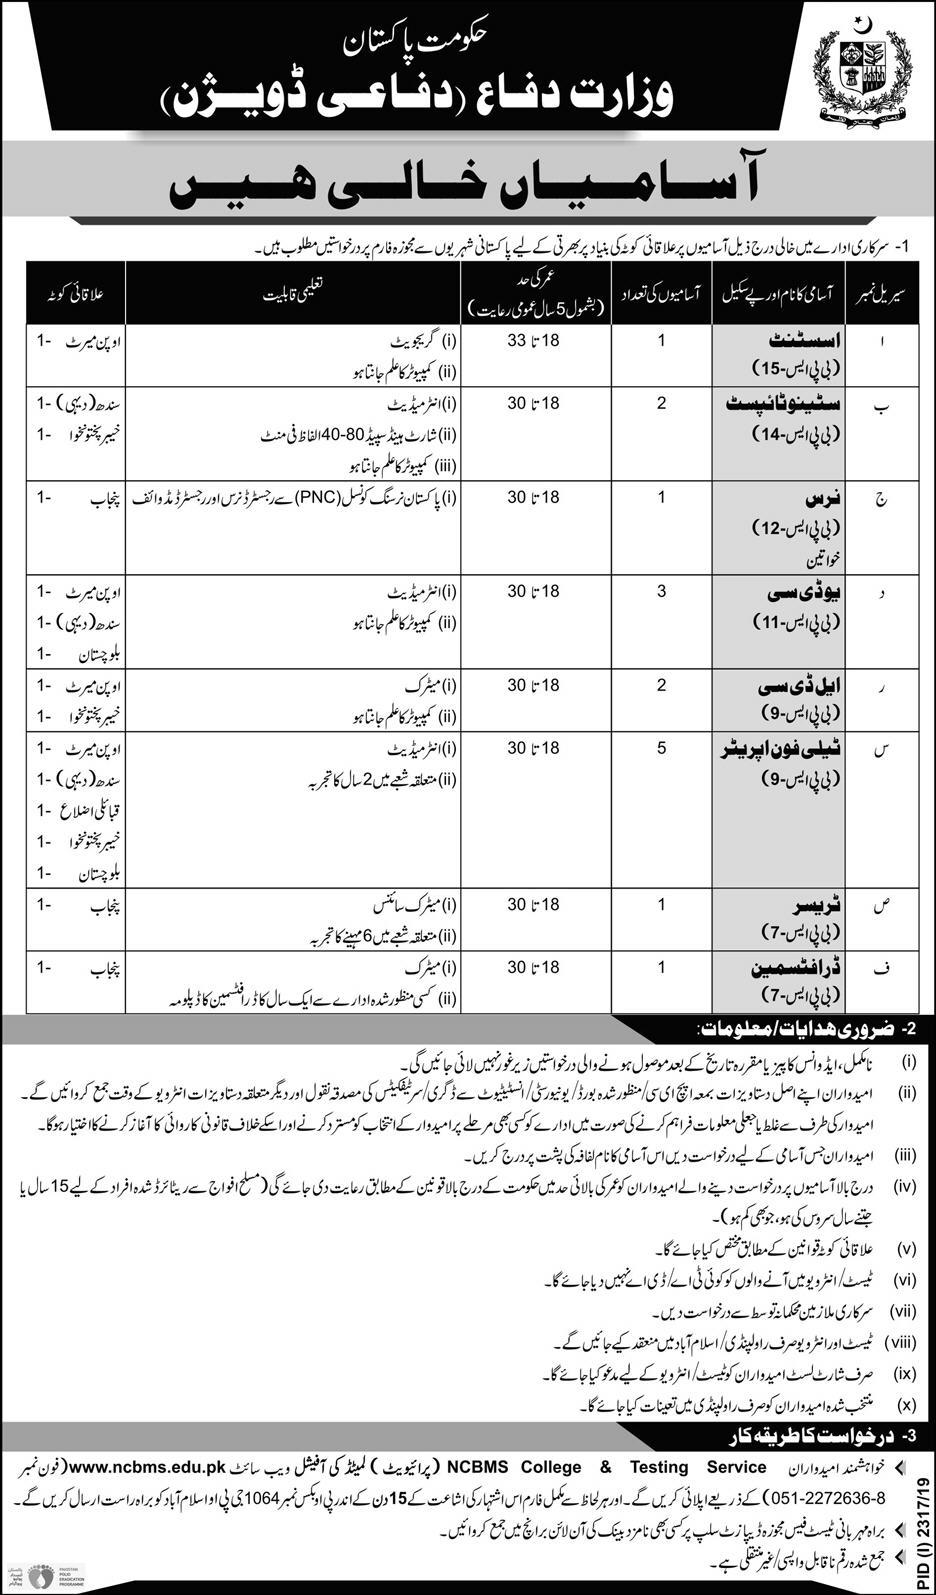 Ministry of Defence Jobs 2019 Pakistan for Assistant (BPS-15)